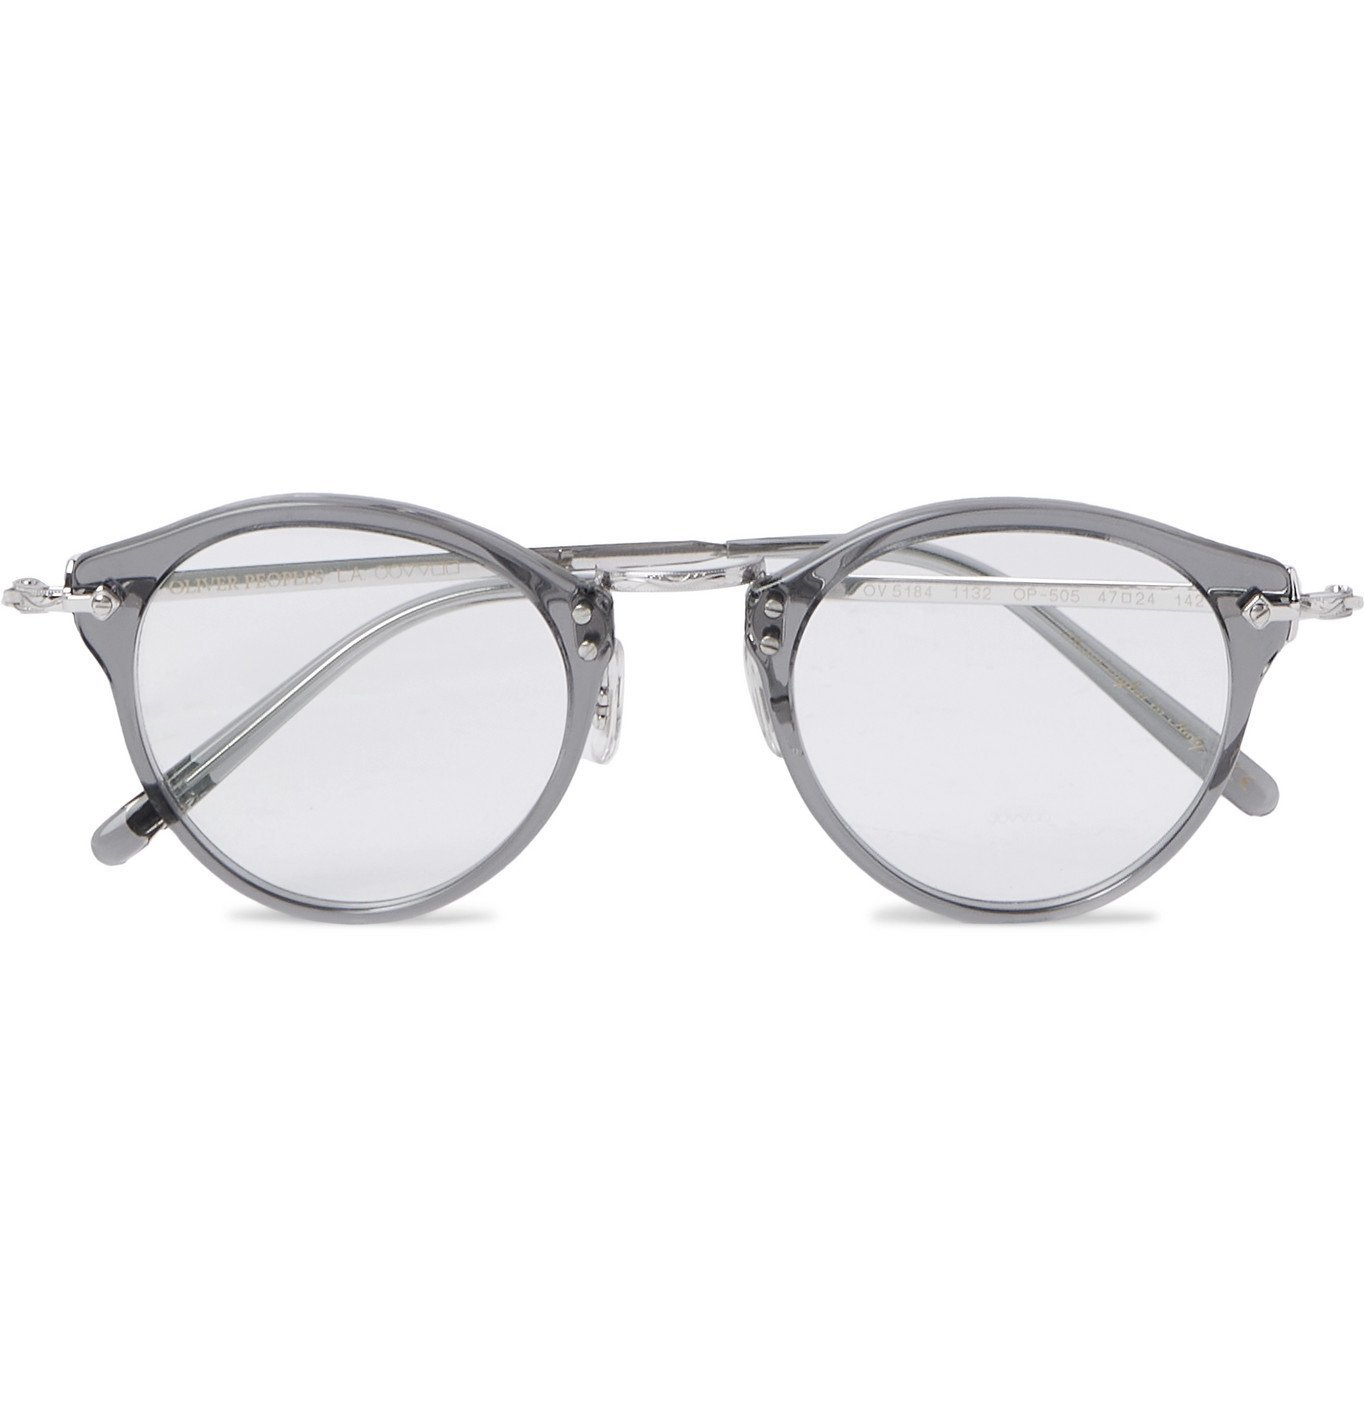 Photo: OLIVER PEOPLES - OP-505 Round-Frame Acetate and Silver-Tone Optical Glasses - Gray